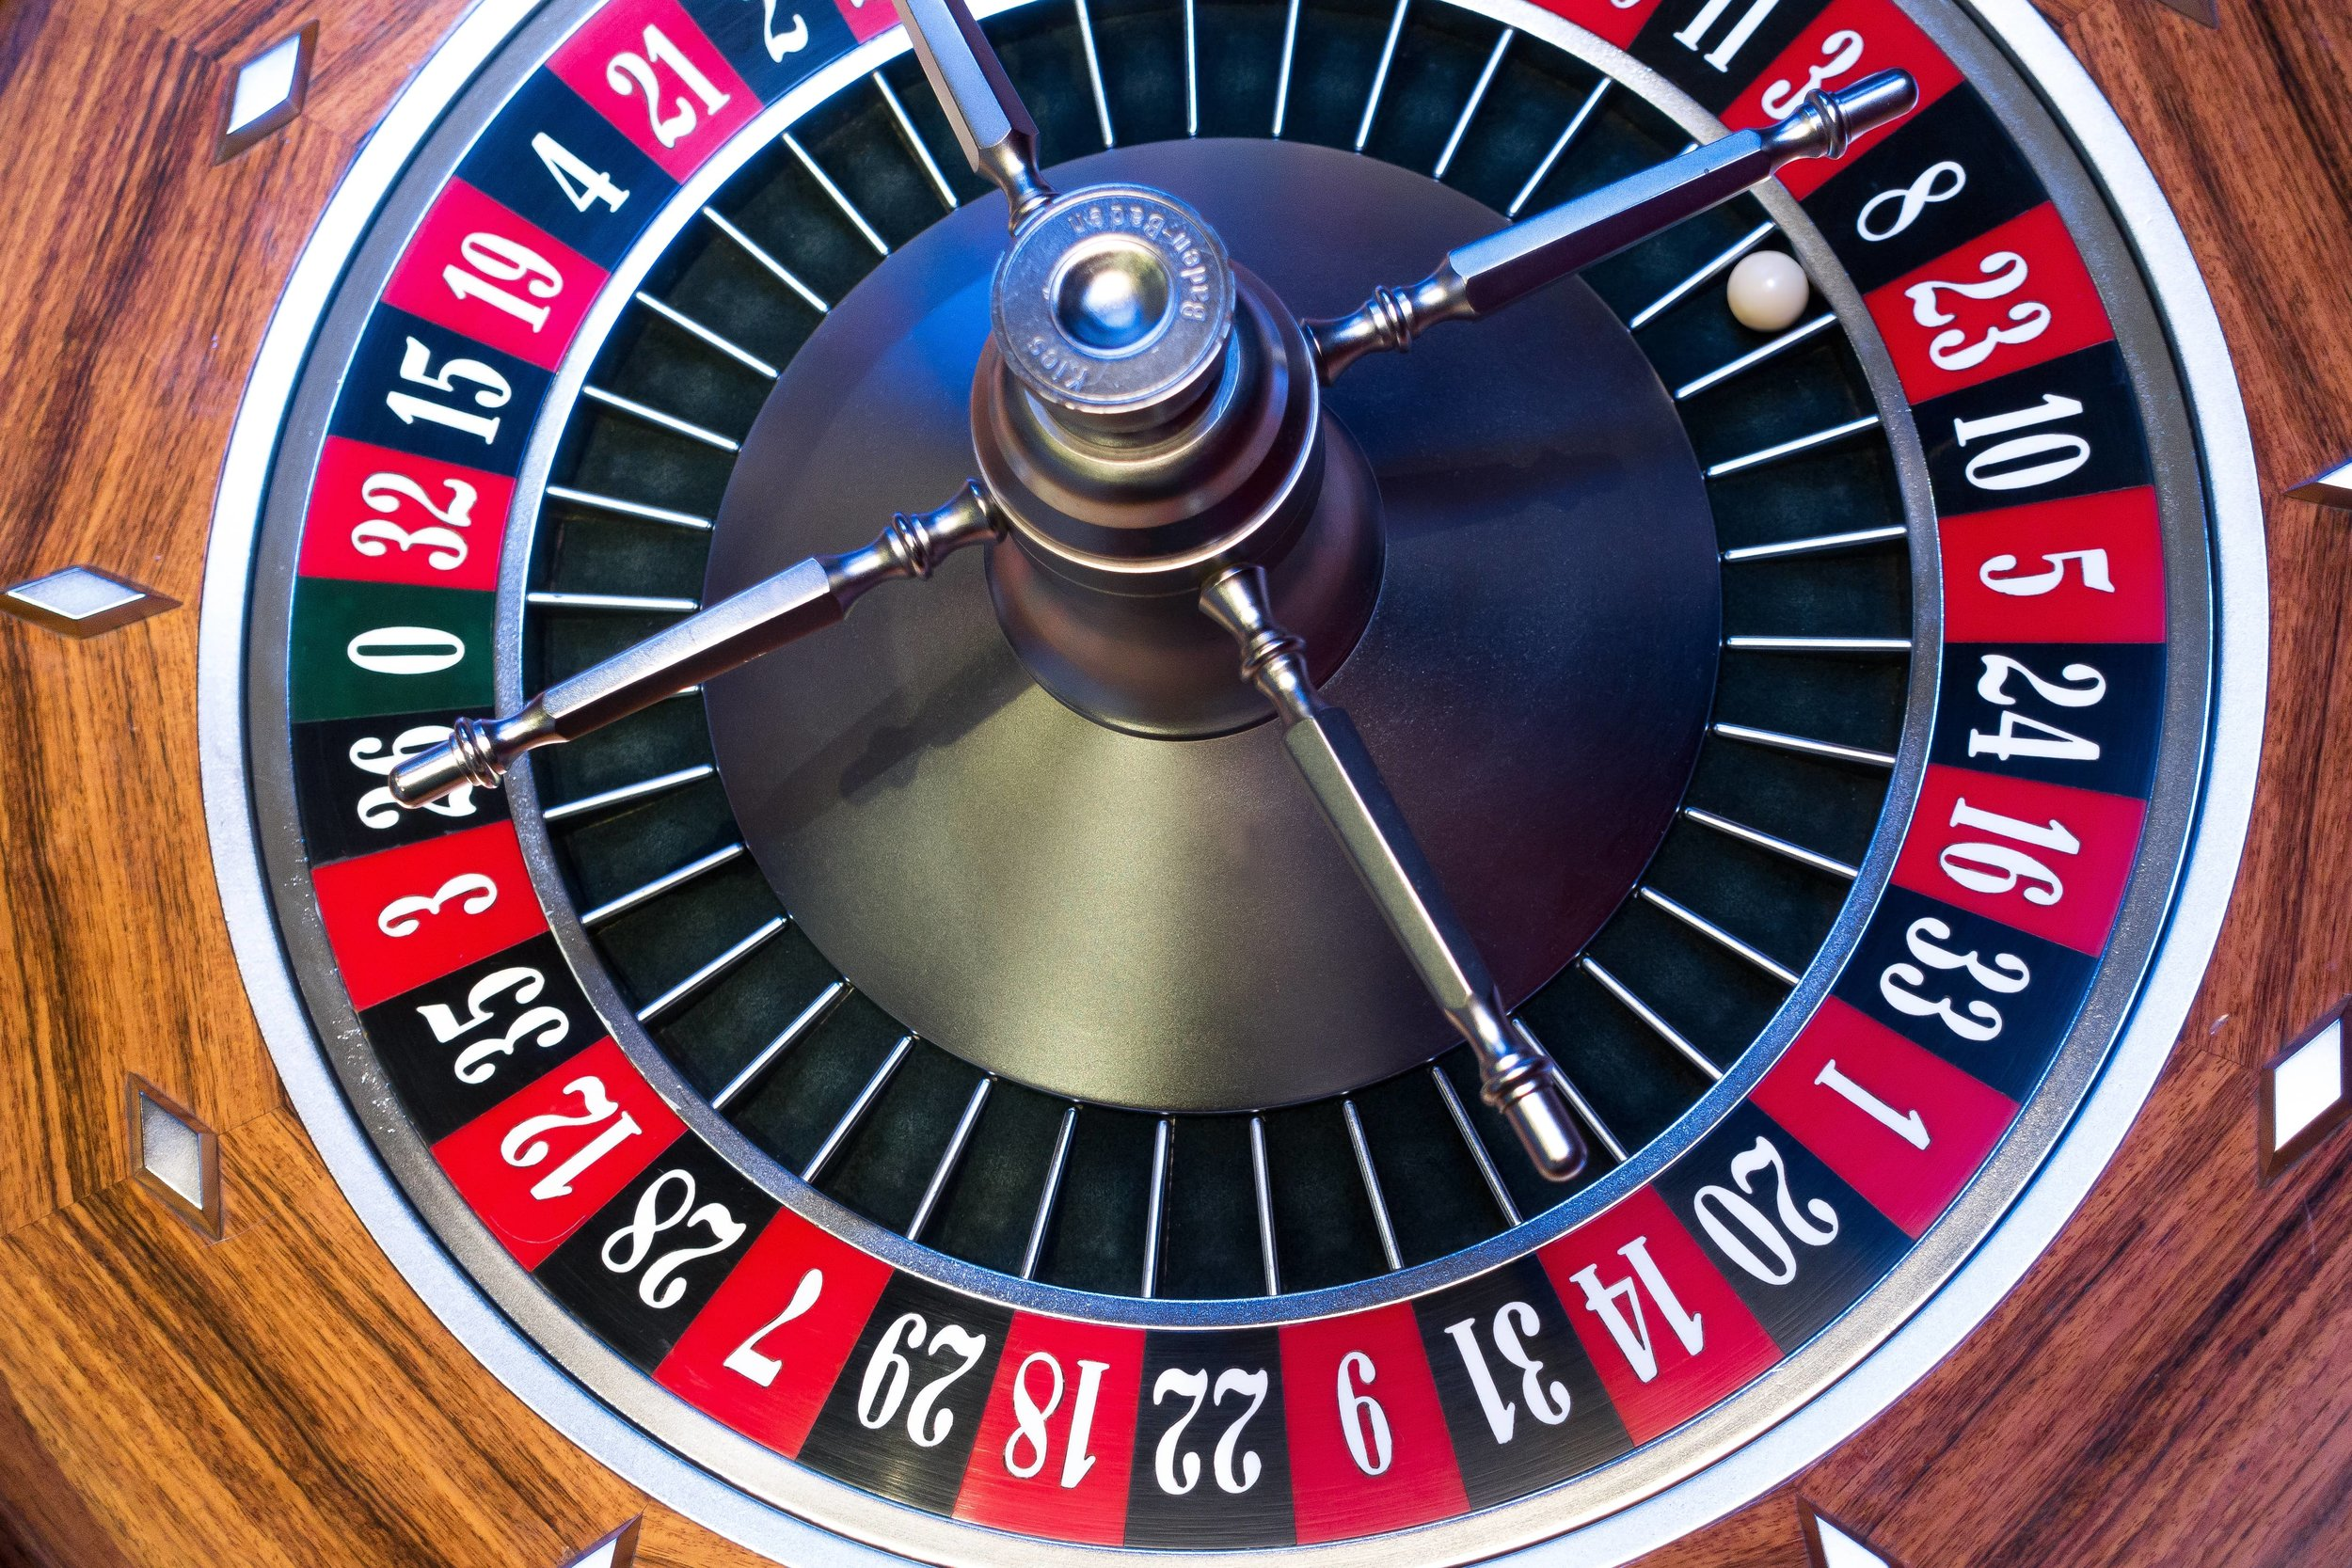 Roulette gambling investment